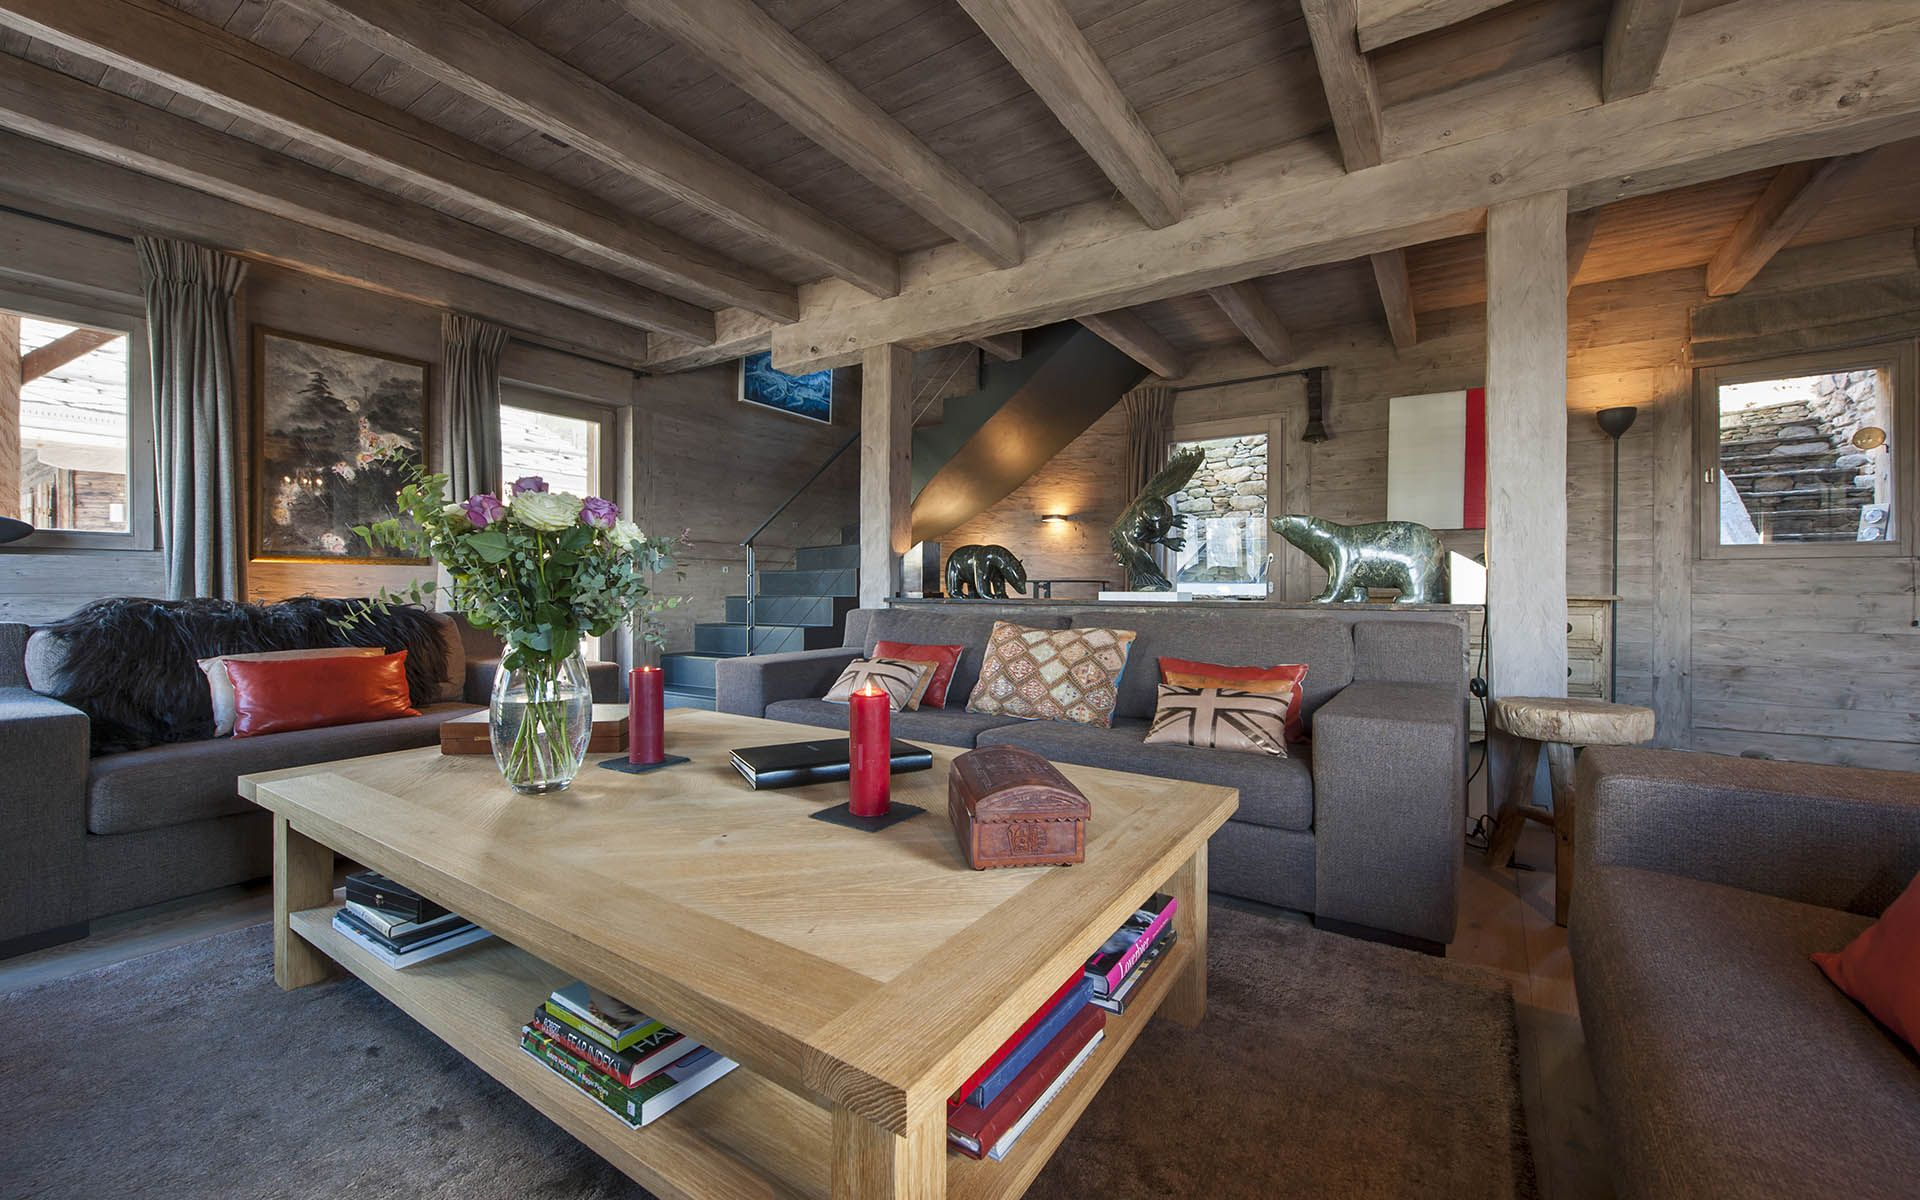 Luxury ski chalet chalet bouquetin verbier switzerland